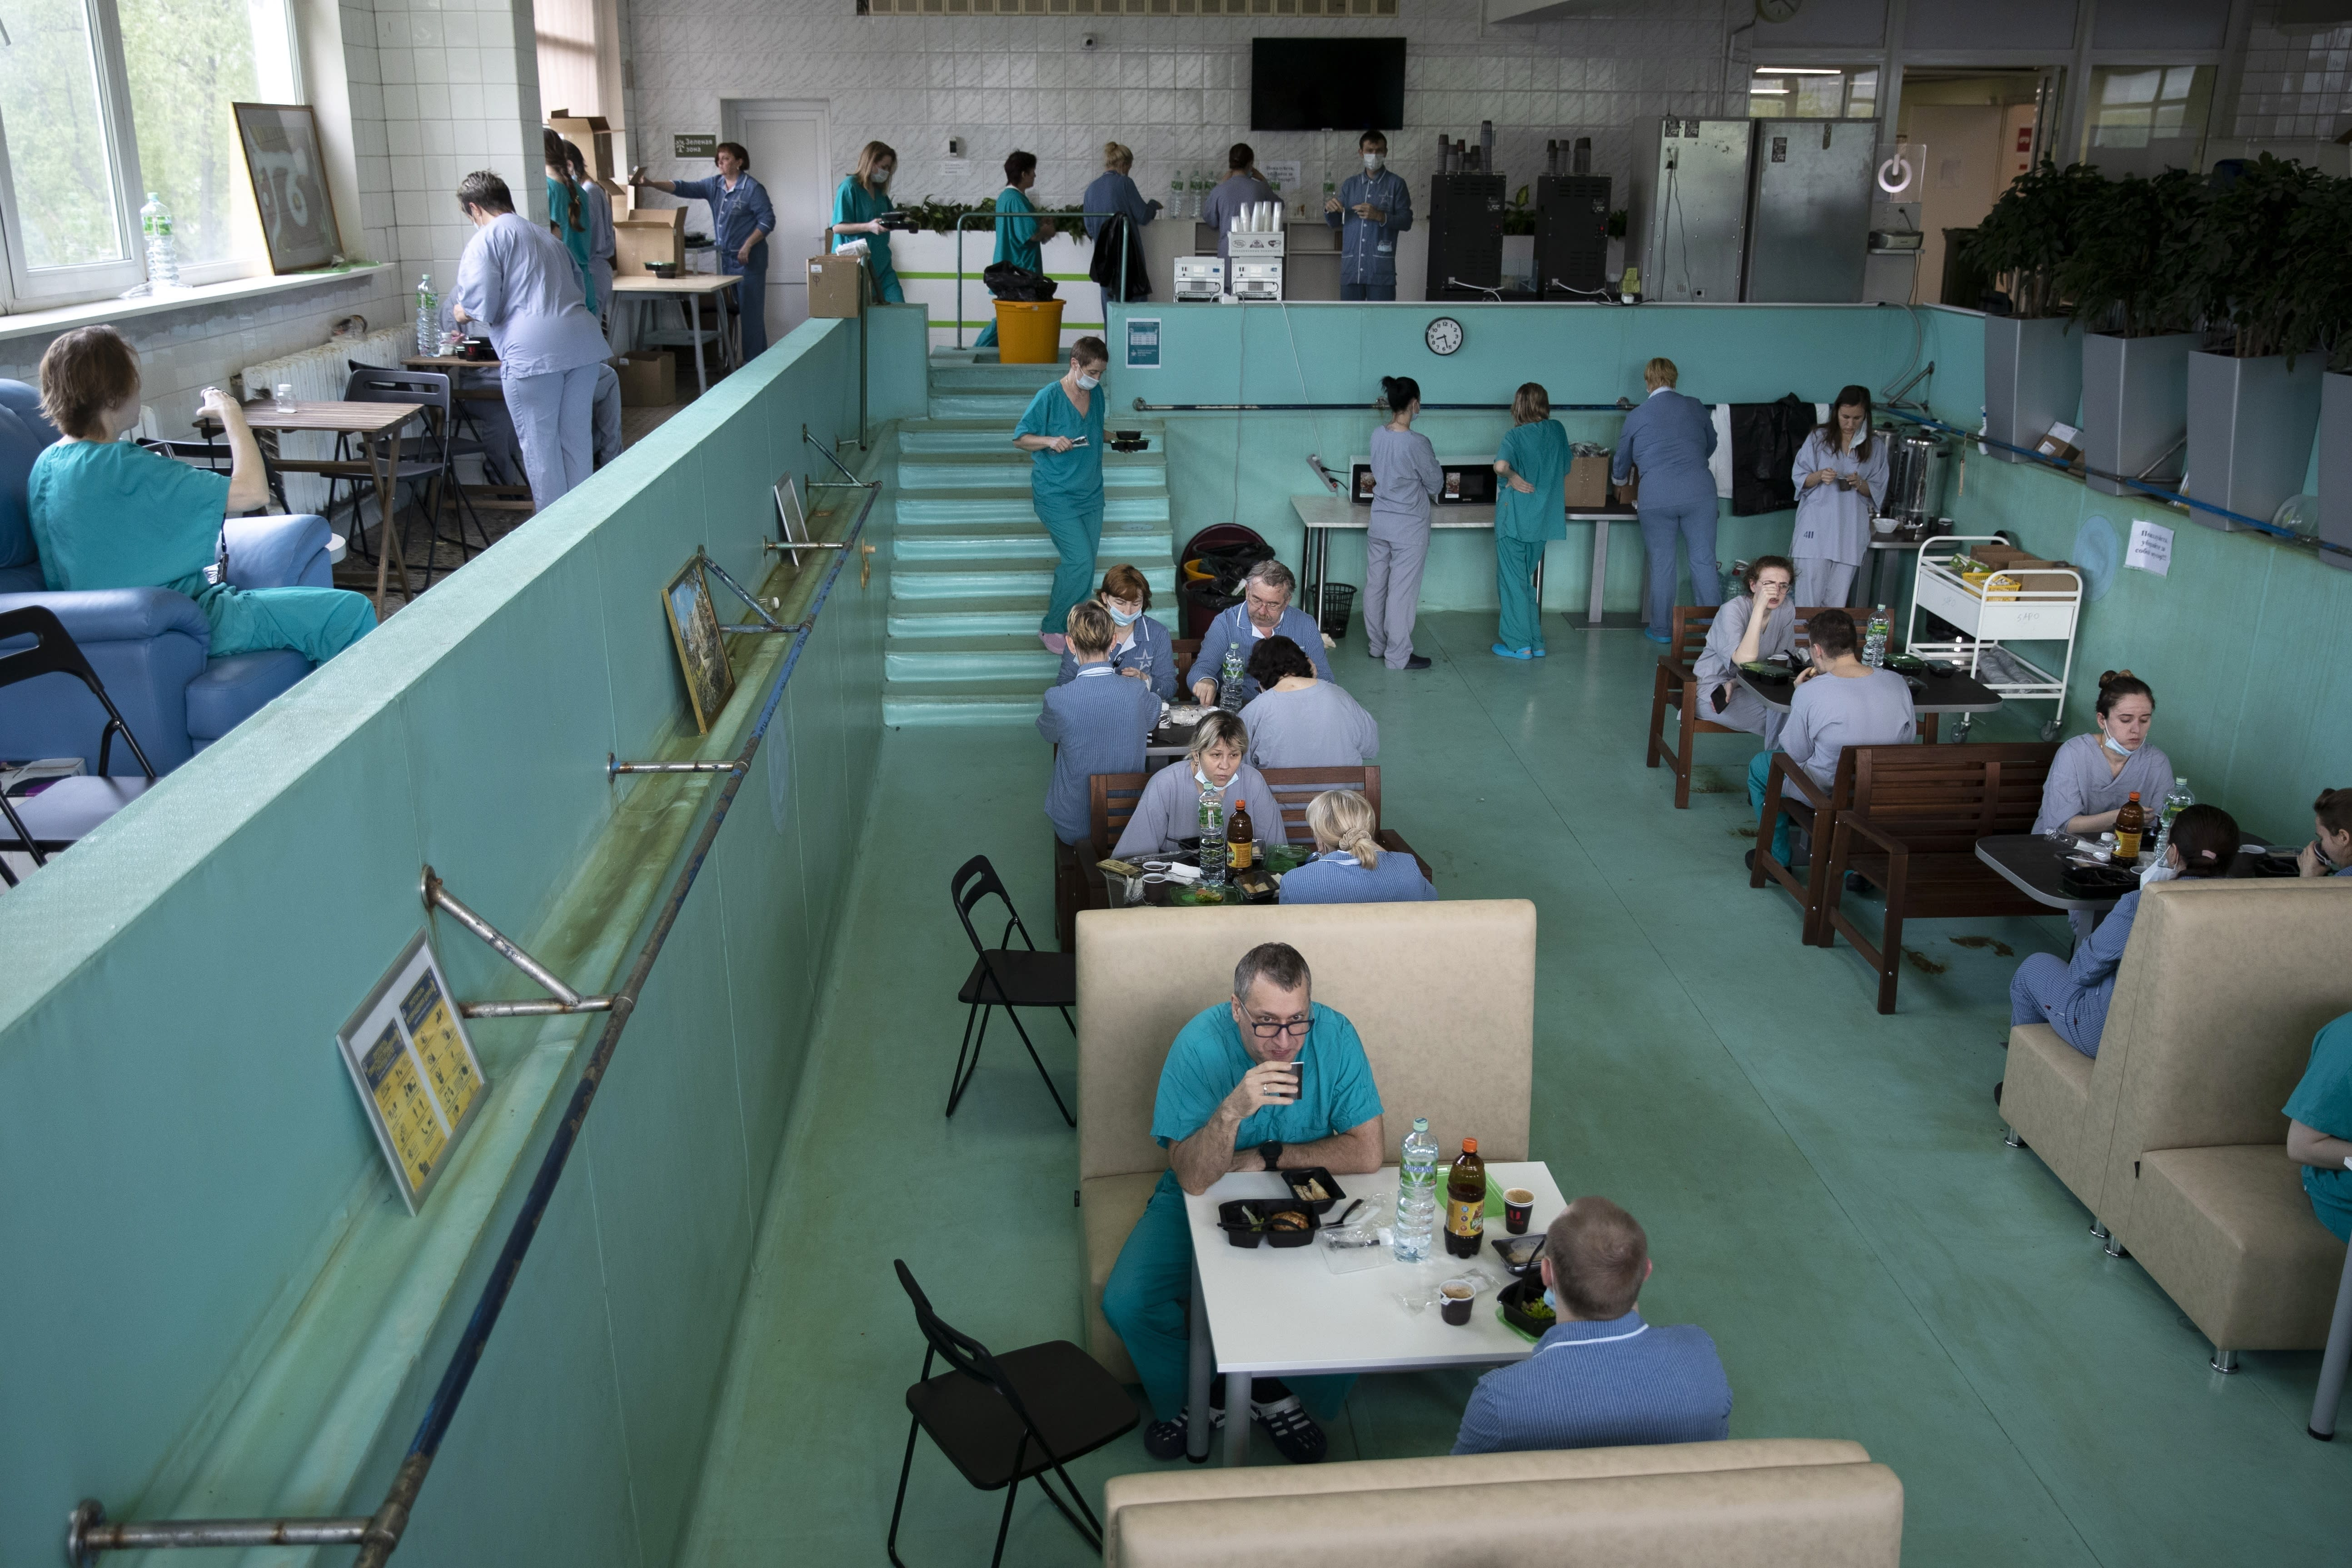 In this photo taken on Friday, May 15, 2020, Dr. Osman Osmanov, center, has breakfast before his shift at an intensive care unit of the Filatov City Clinical Hospital in Moscow, Russia. Moscow accounts for about half of all of Russia's coronavirus cases, a deluge that strains the city's hospitals and has forced Osmanov to to work every day for the past two months, sometimes for 24 hours in a row. (AP Photo/Pavel Golovkin)